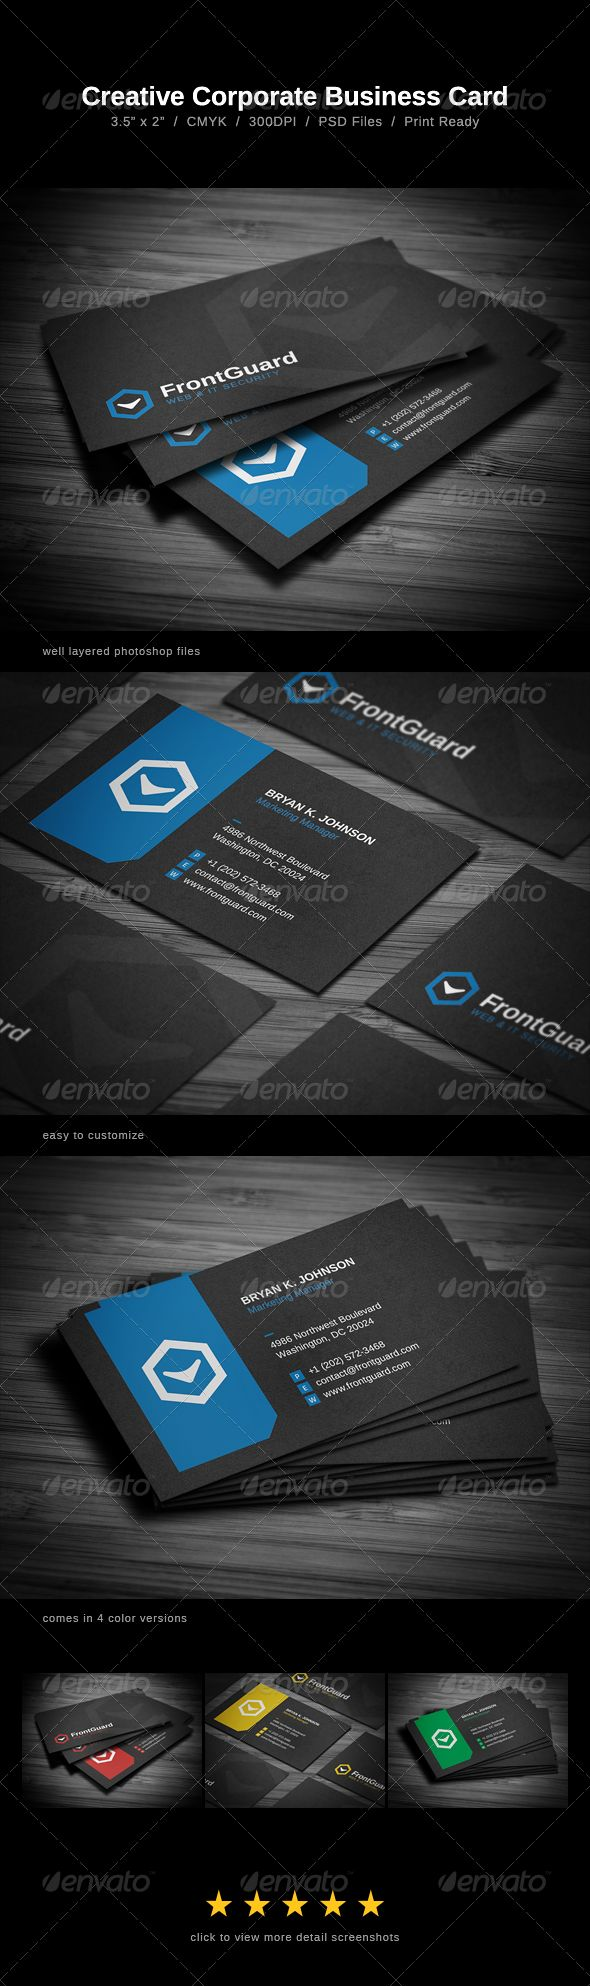 107 best print templates images on pinterest print templates creative business card magicingreecefo Images